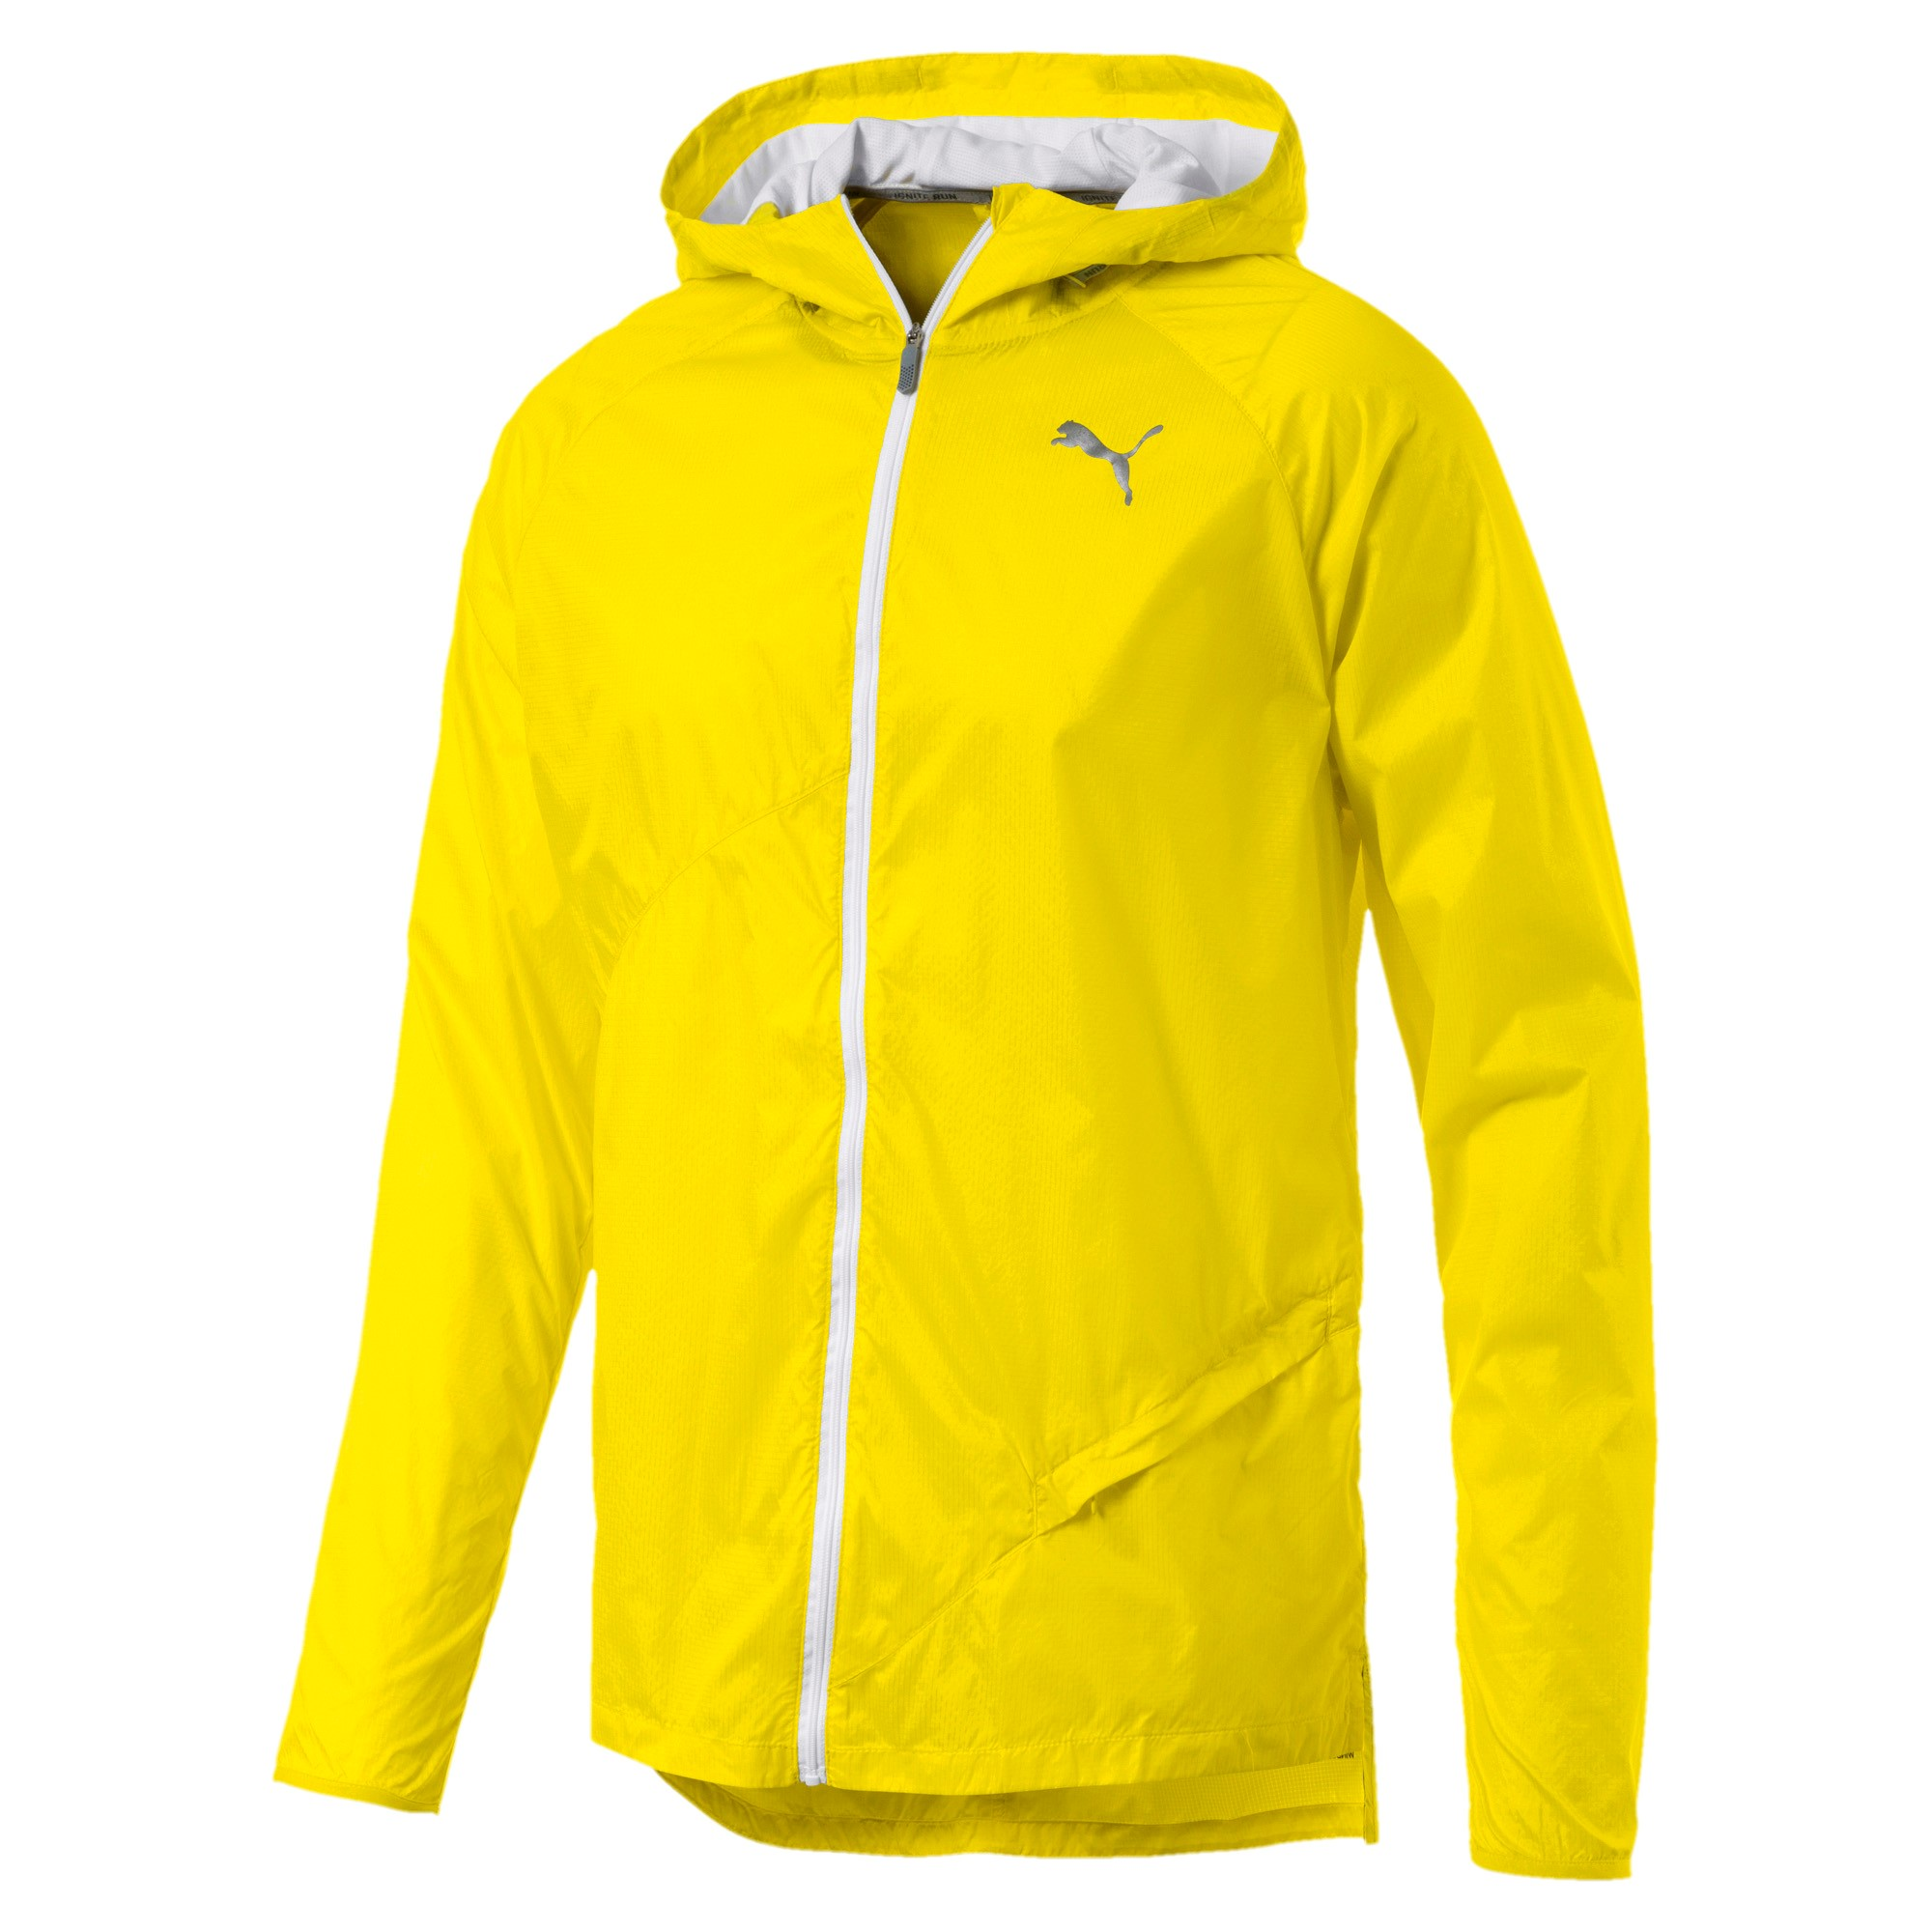 CHAQUETA PUMA Lightweight Hooded Jacket Blazing Yellow